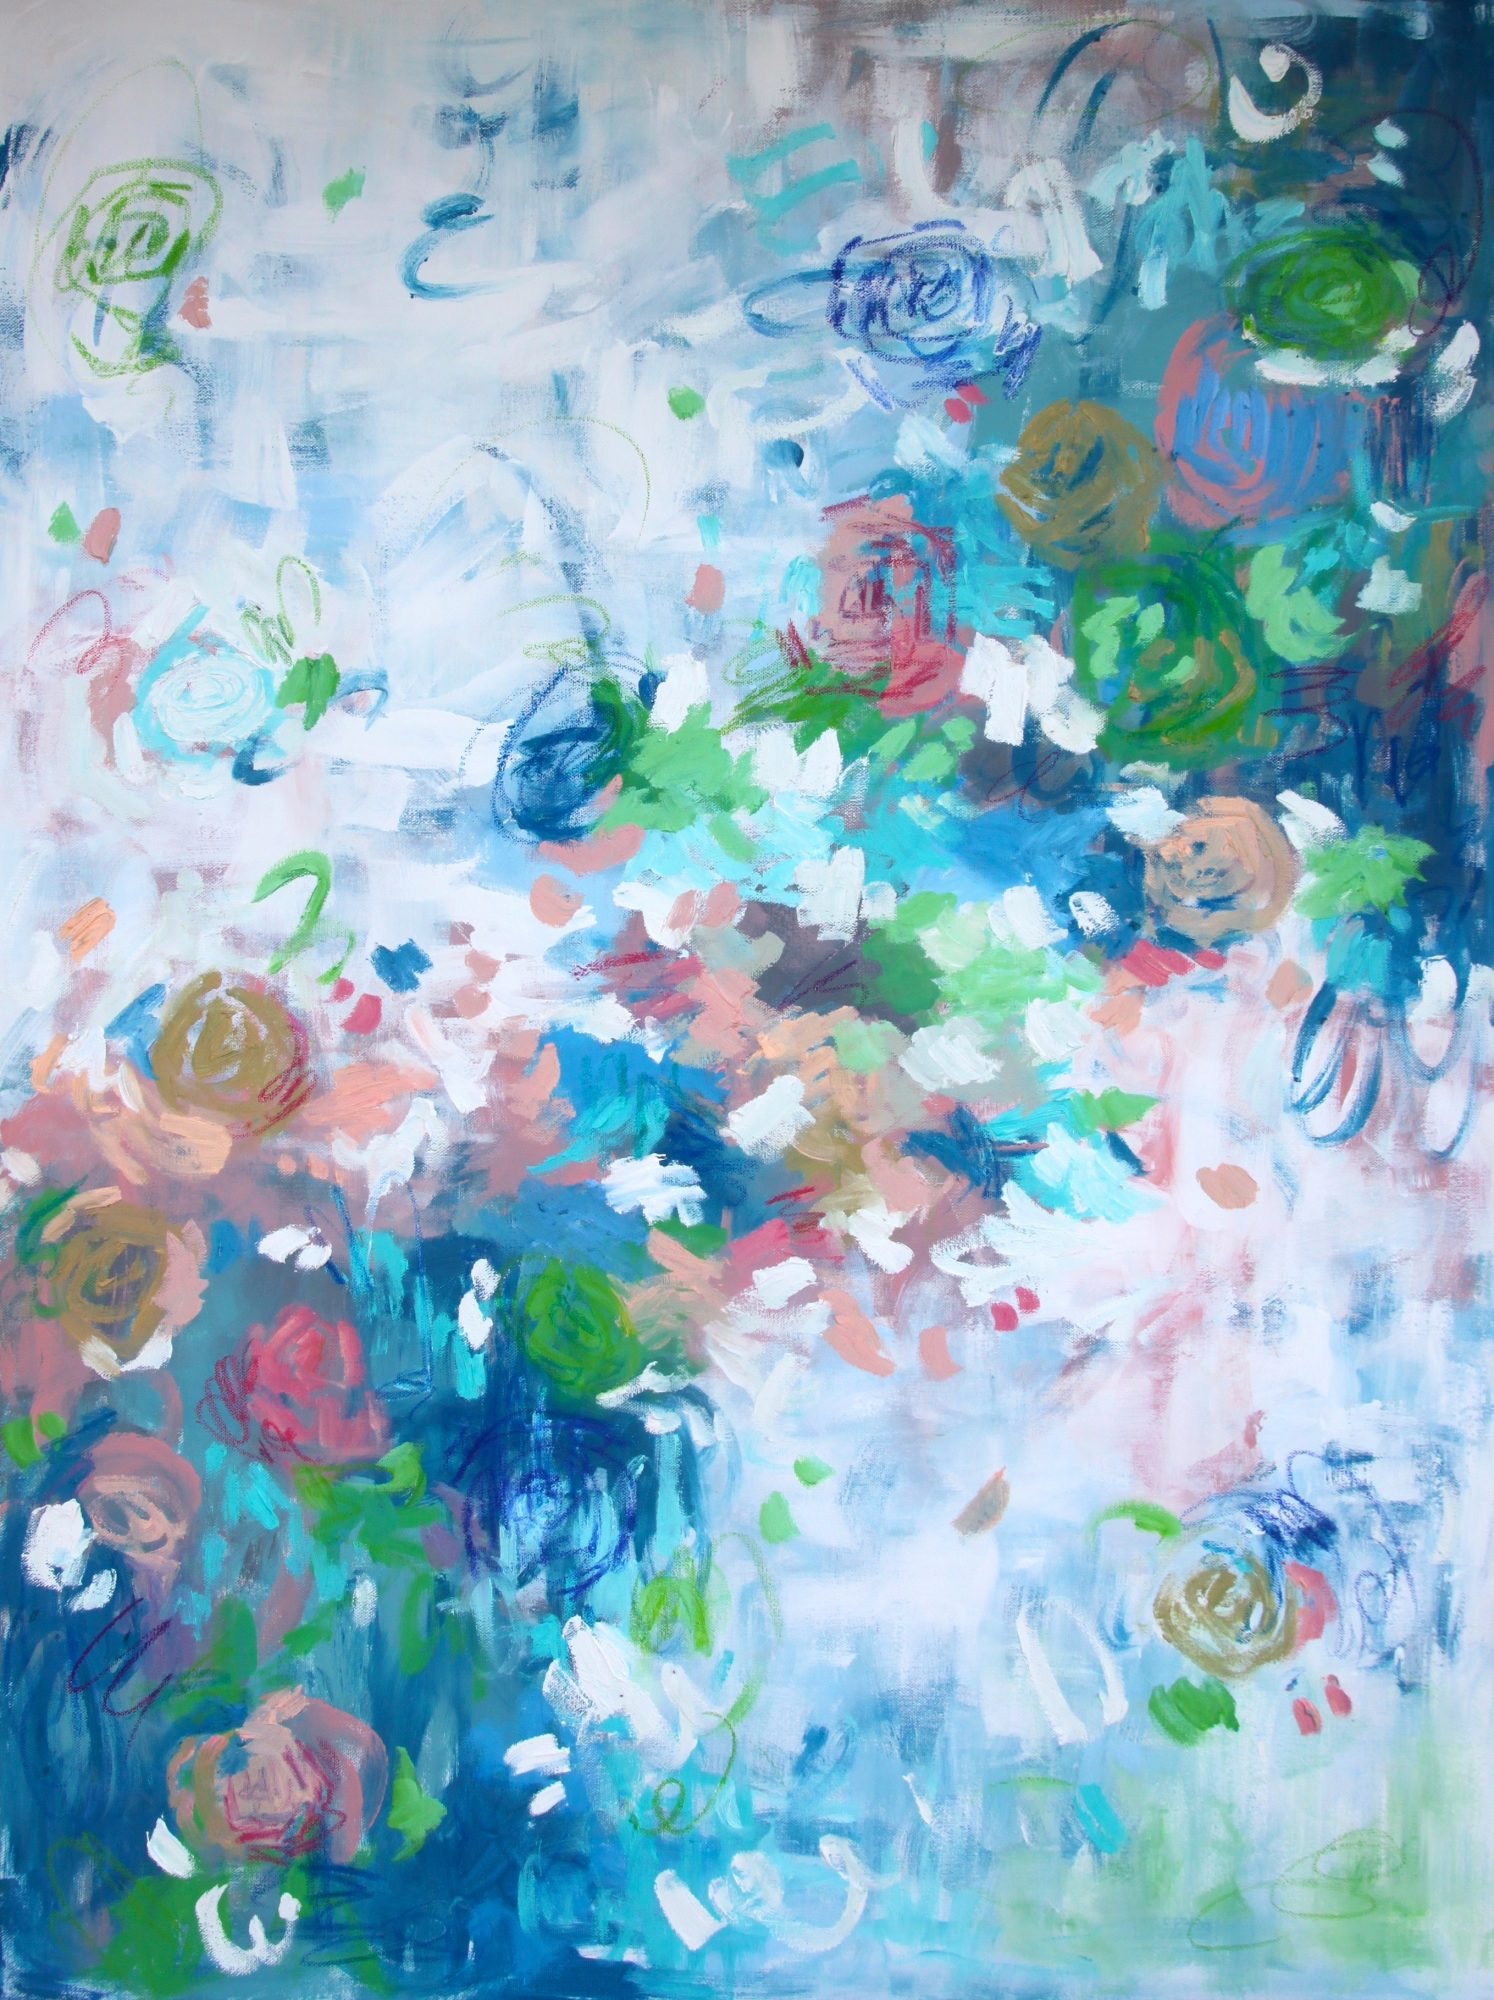 belinda-nadwie-atr-abstract-painting-no one else